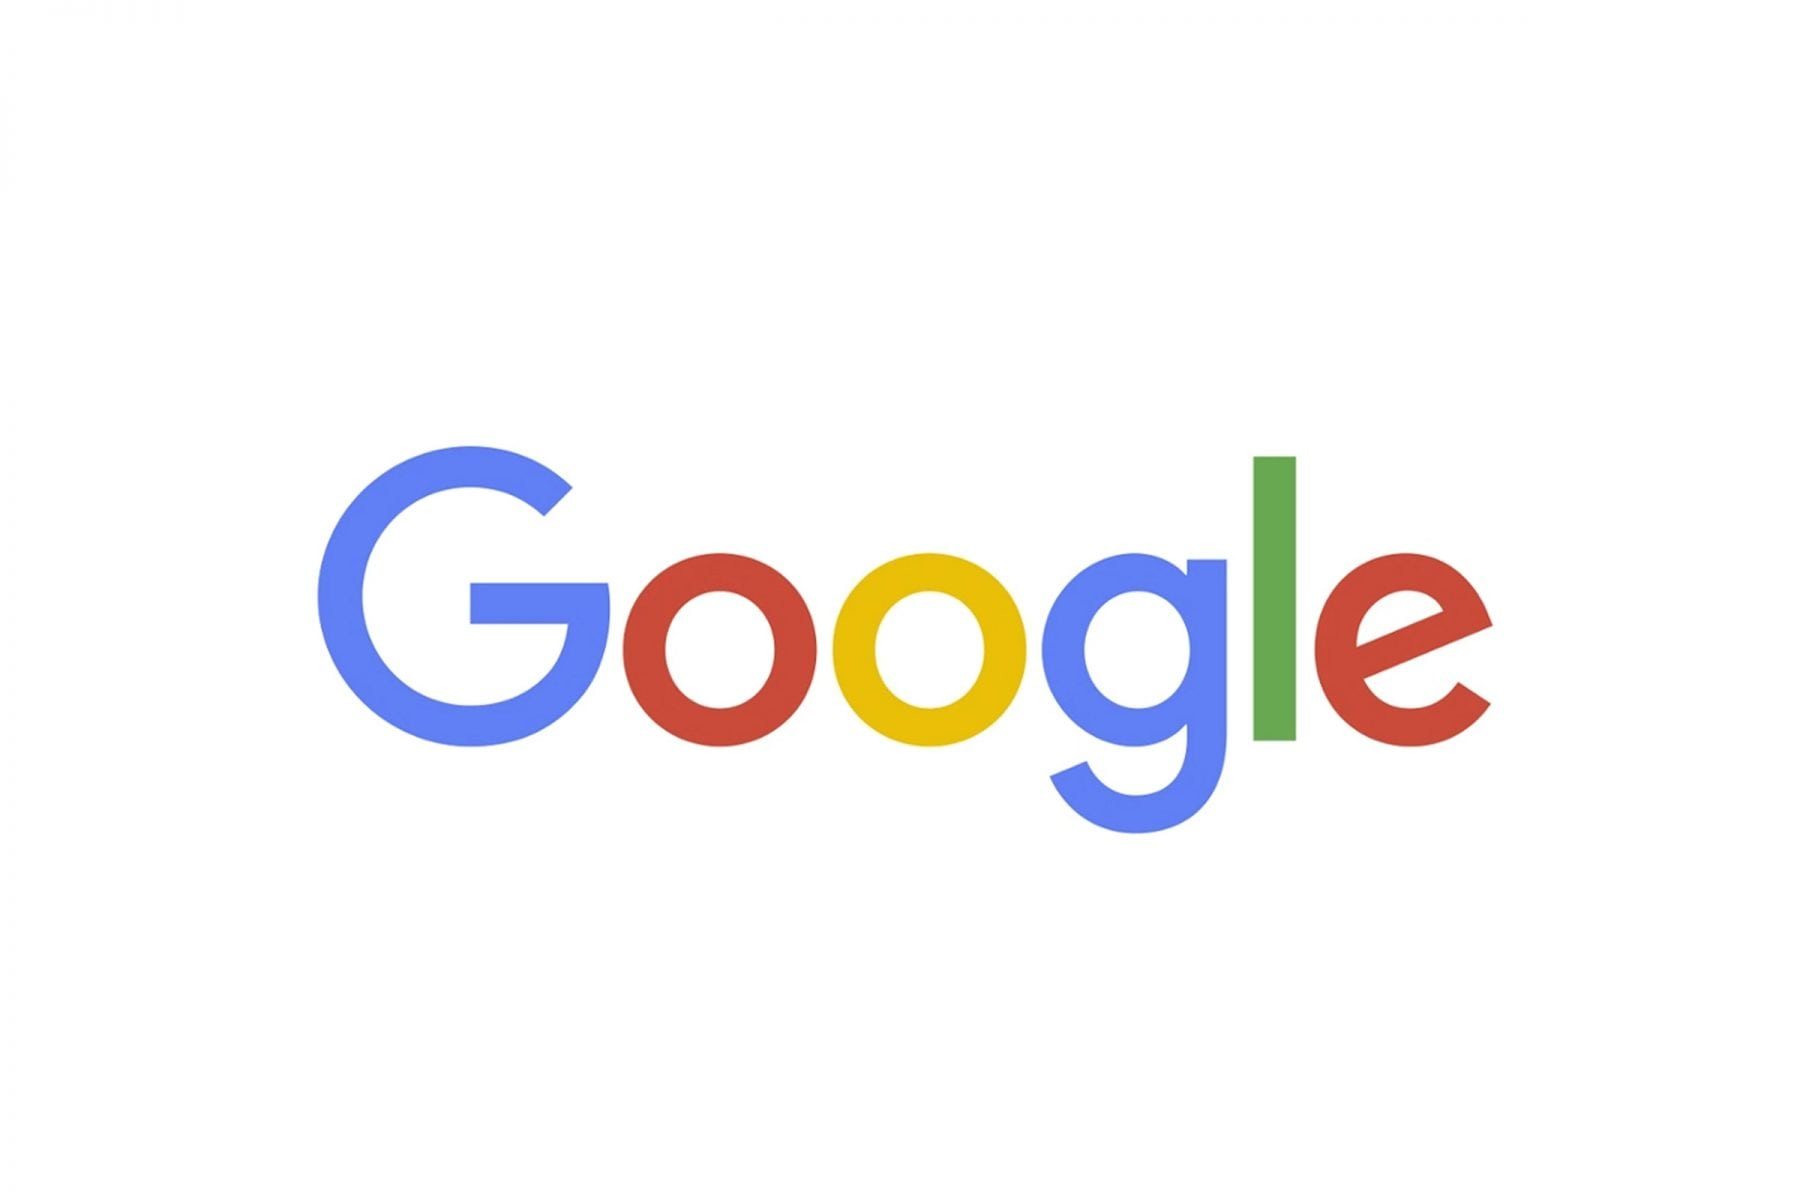 Google reveals new logo butler branding - Google home design ...